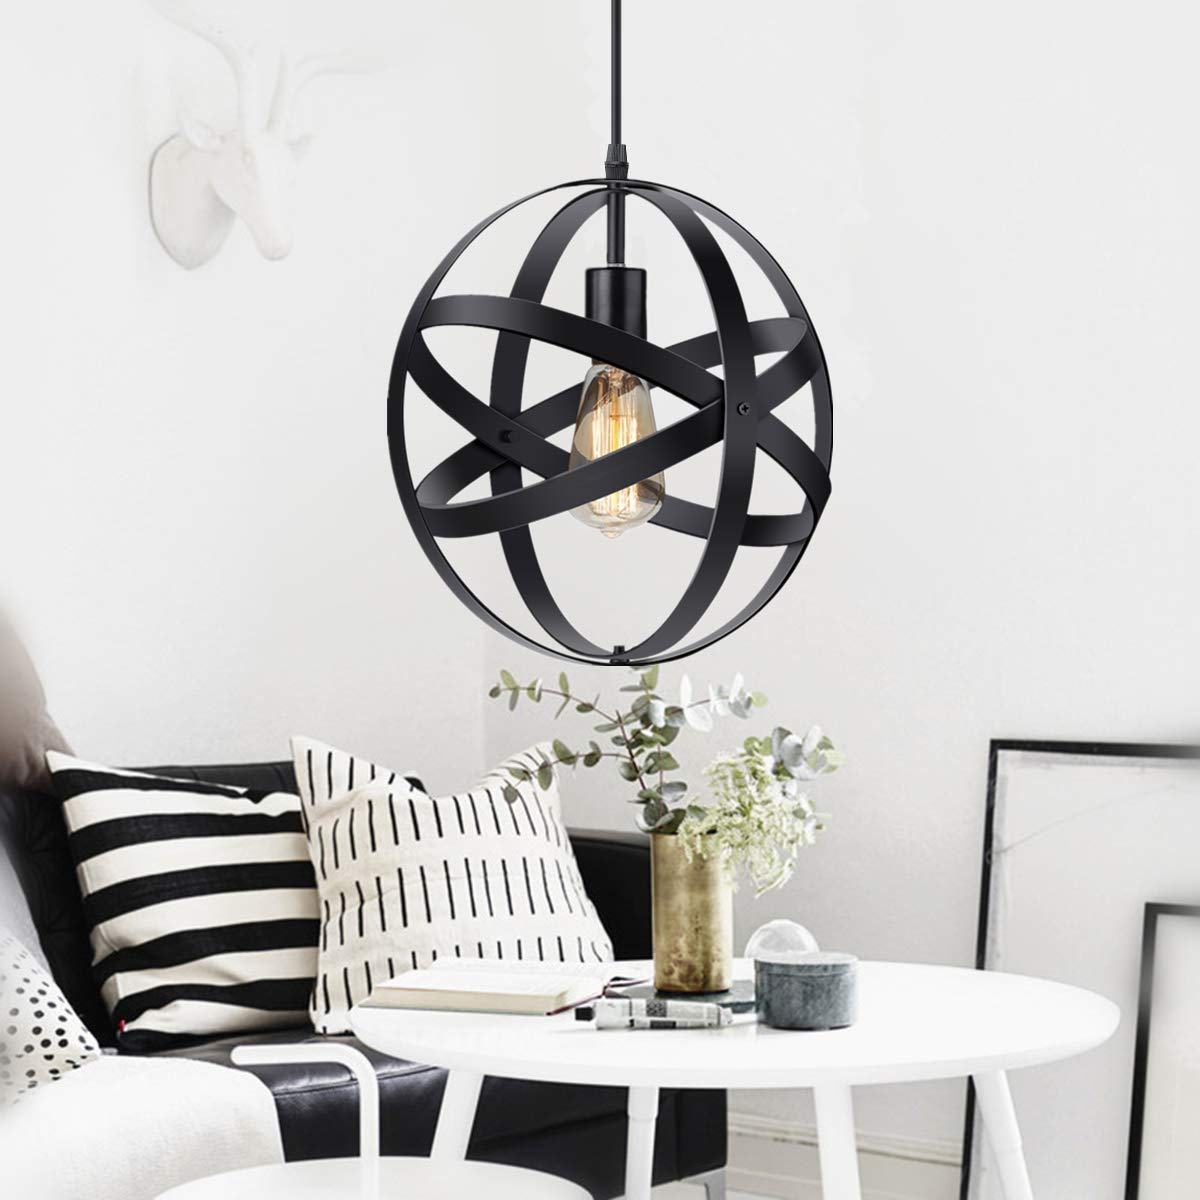 KingSo Industrial Metal Pendant Light, Spherical Pendant Light, Rustic Chandelier Vintage Hanging Cage Globe Ceiling Light Fixture for Kitchen Island Dining Room Farmhouse Entryway Foyer Table Hallway by KingSo